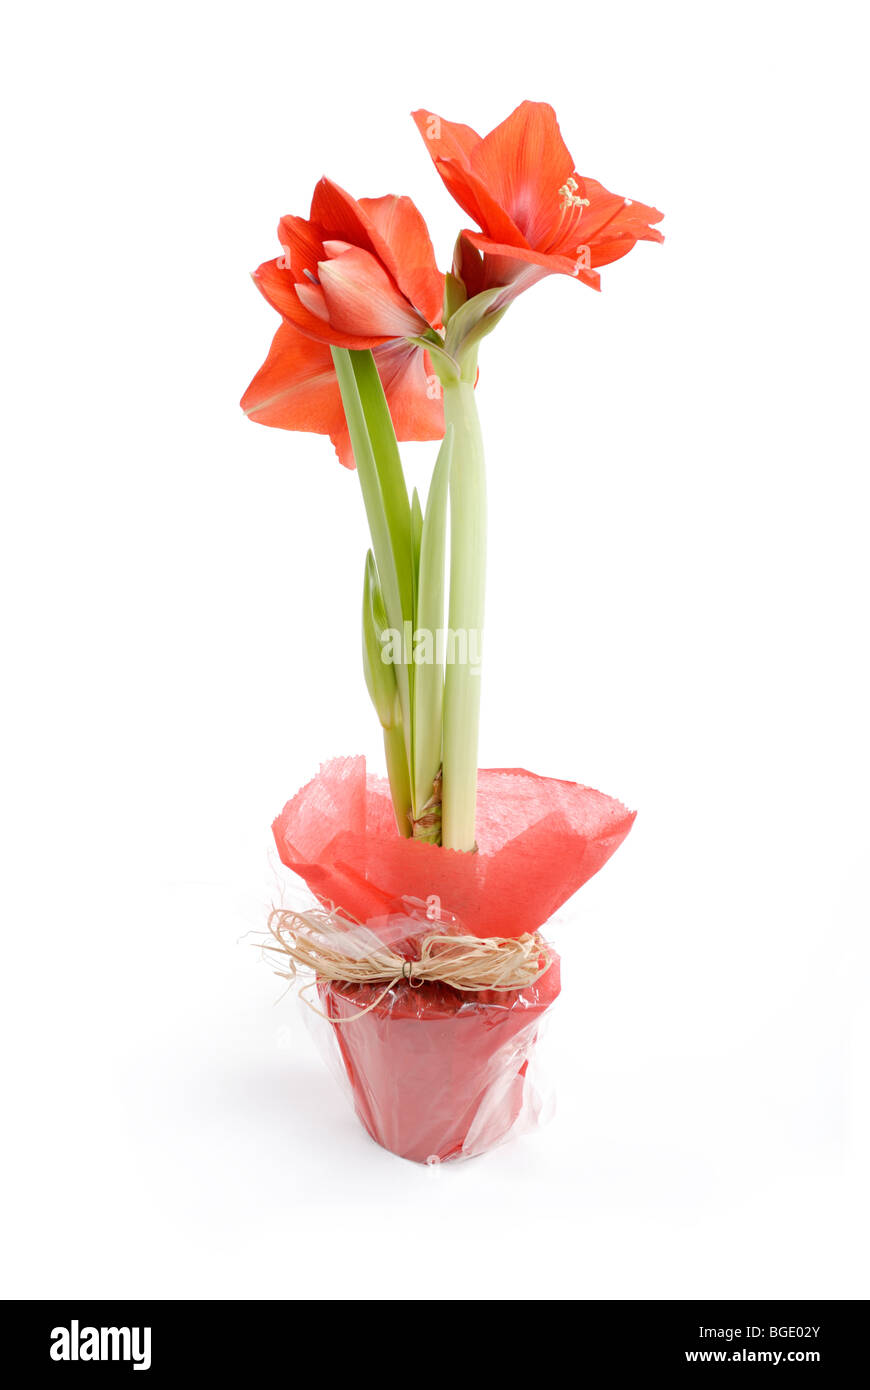 Knight's Star Amaryllis Hippeastrum in gift wrapping Stock Photo